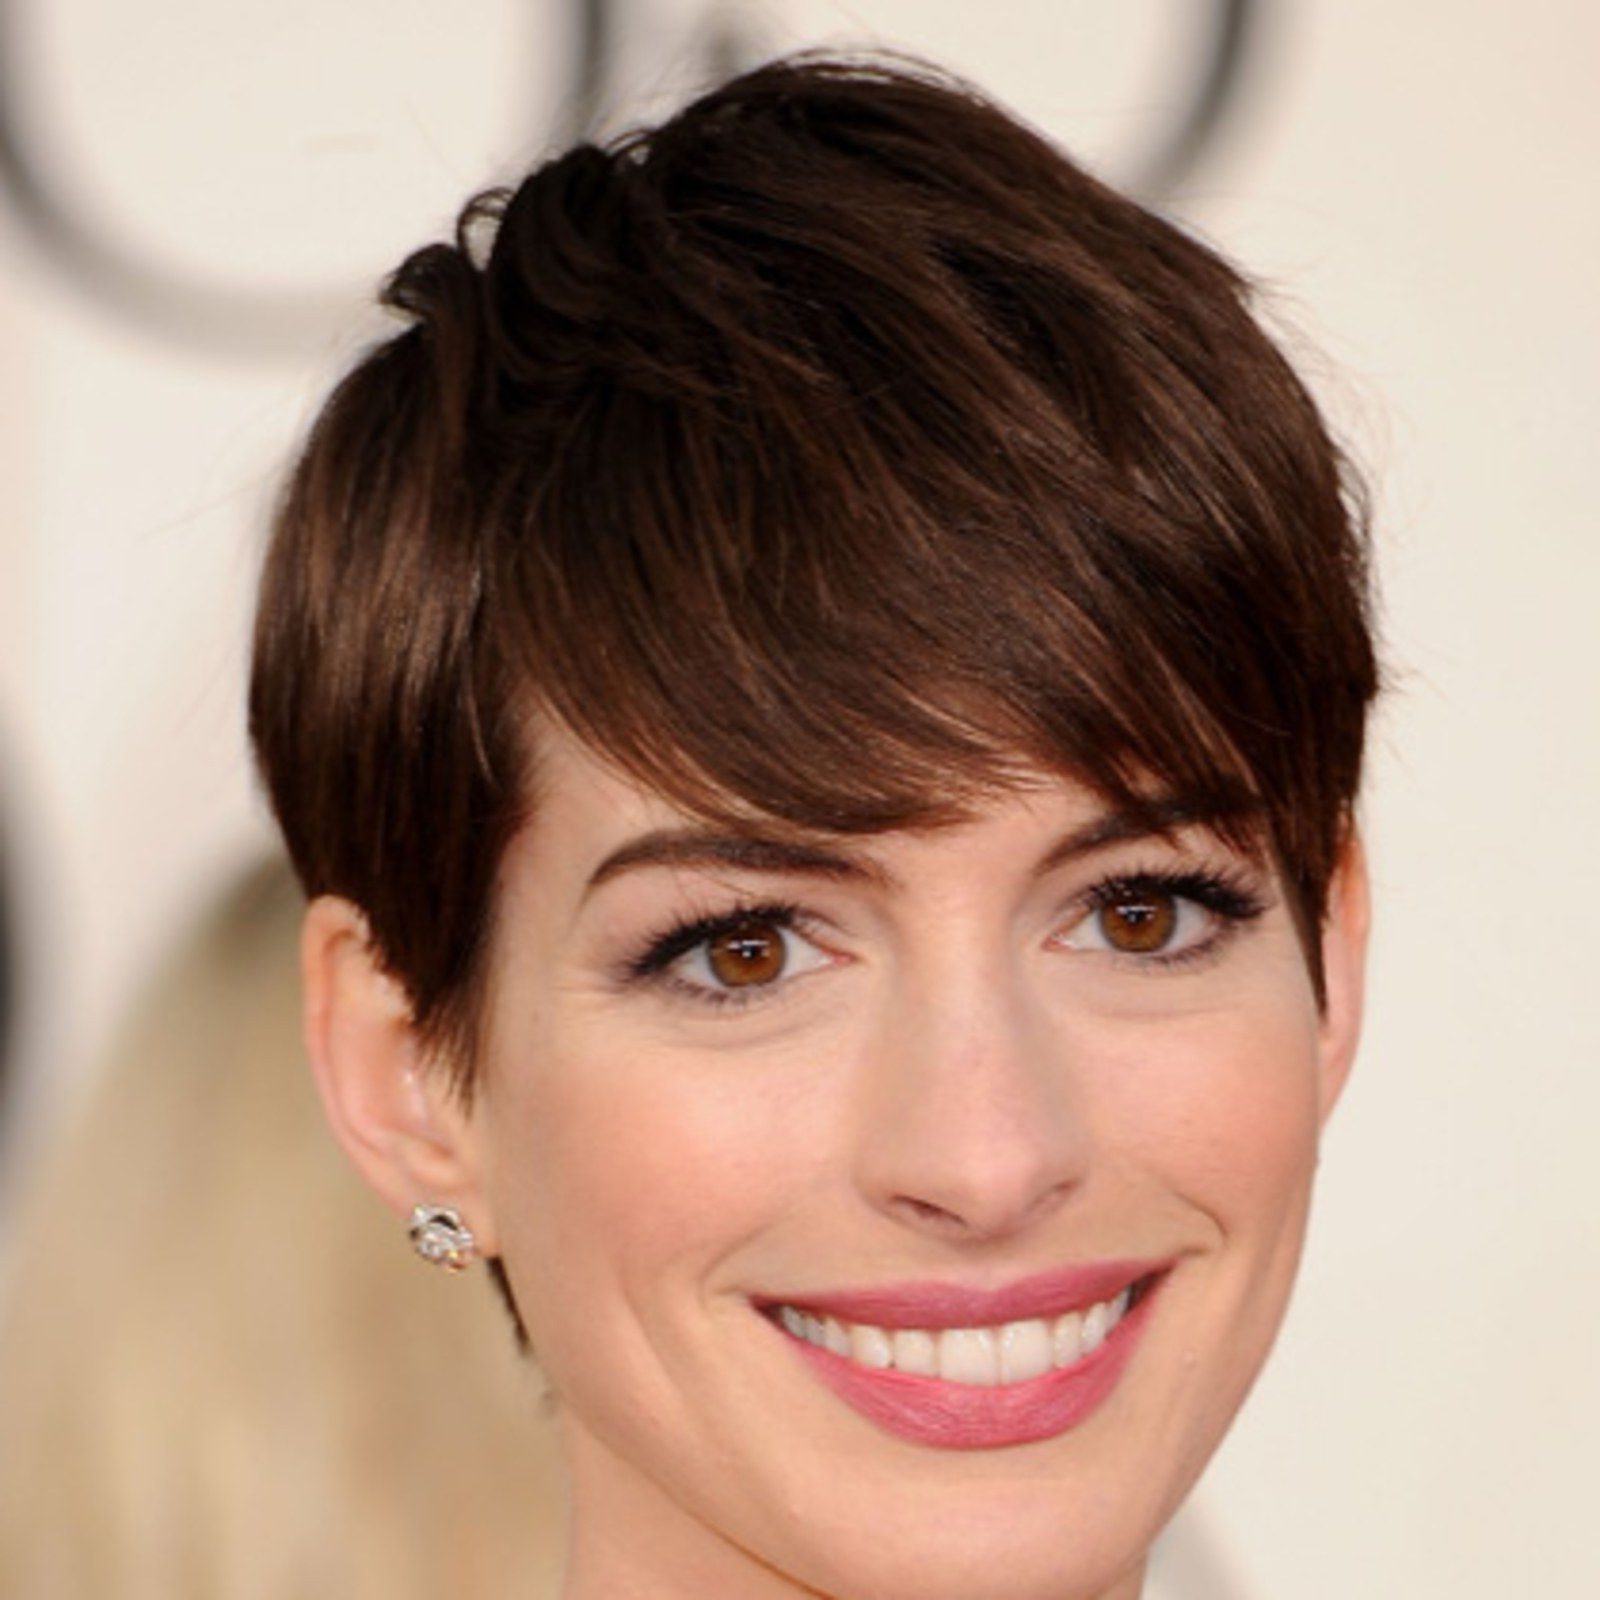 20 Short Haircuts For Women In Their 20S Best Design | Matsnilssonmma Pertaining To 20S Short Hairstyles (View 17 of 25)